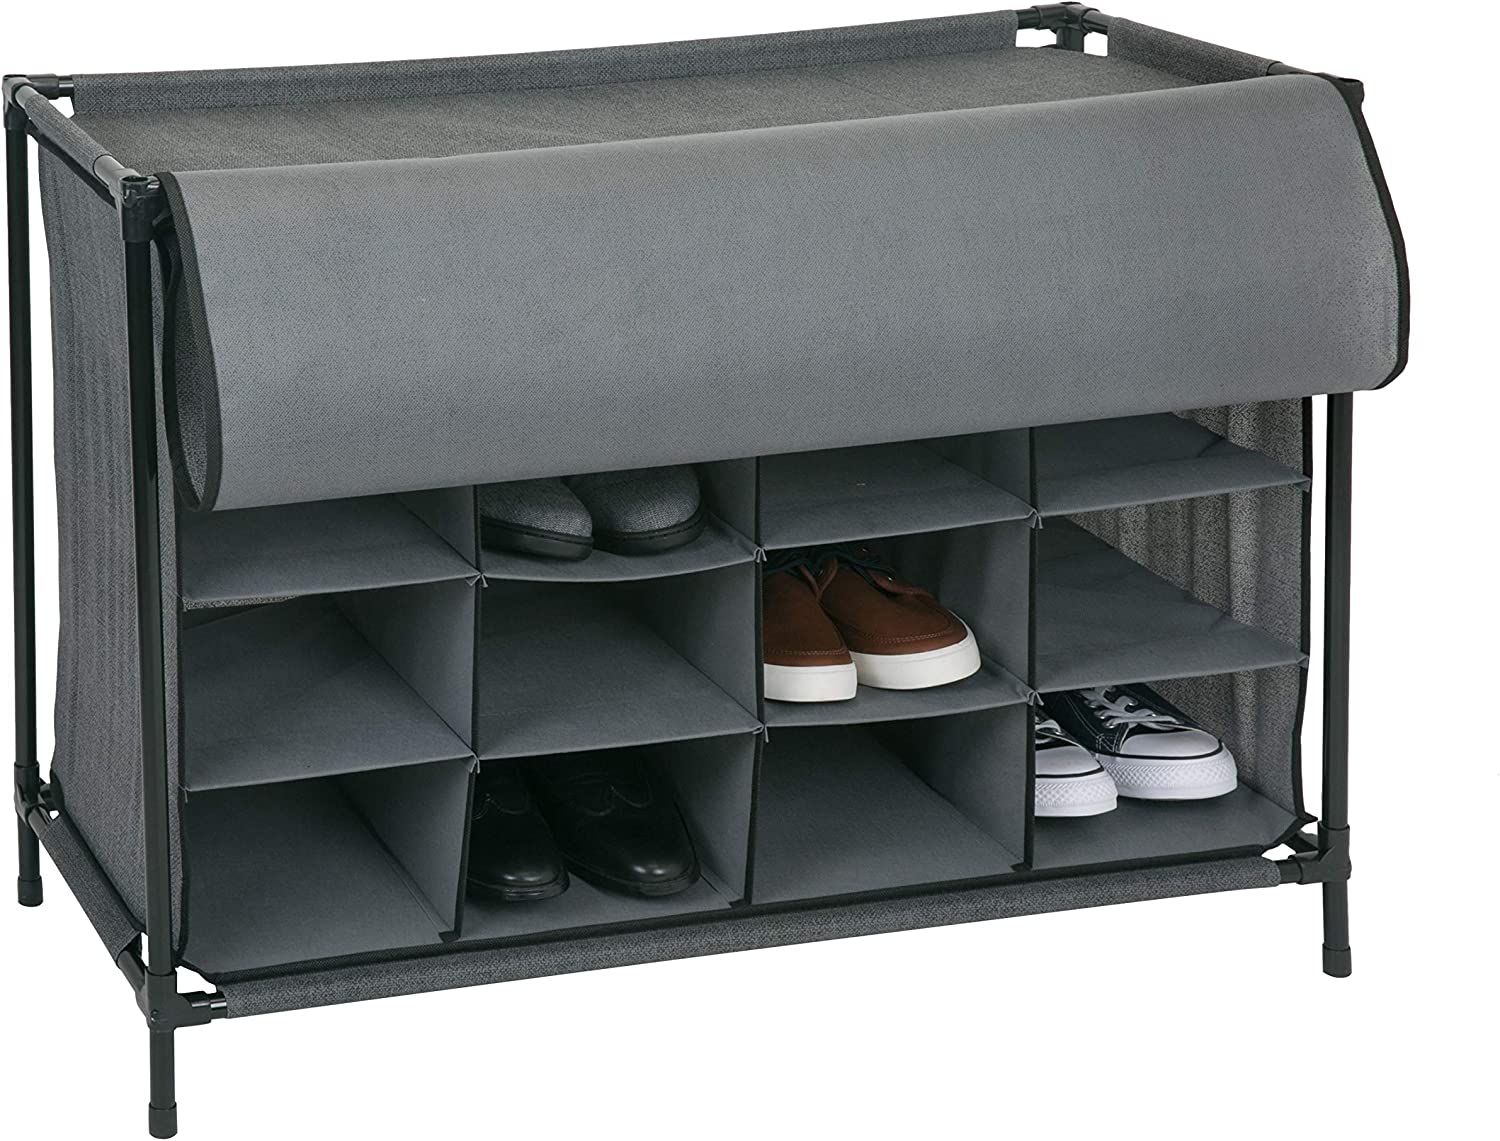 Grey Simplify 16 Pair Stackable Shoe Rack Organizer with Cover for Closet Bedroom /& Entryway